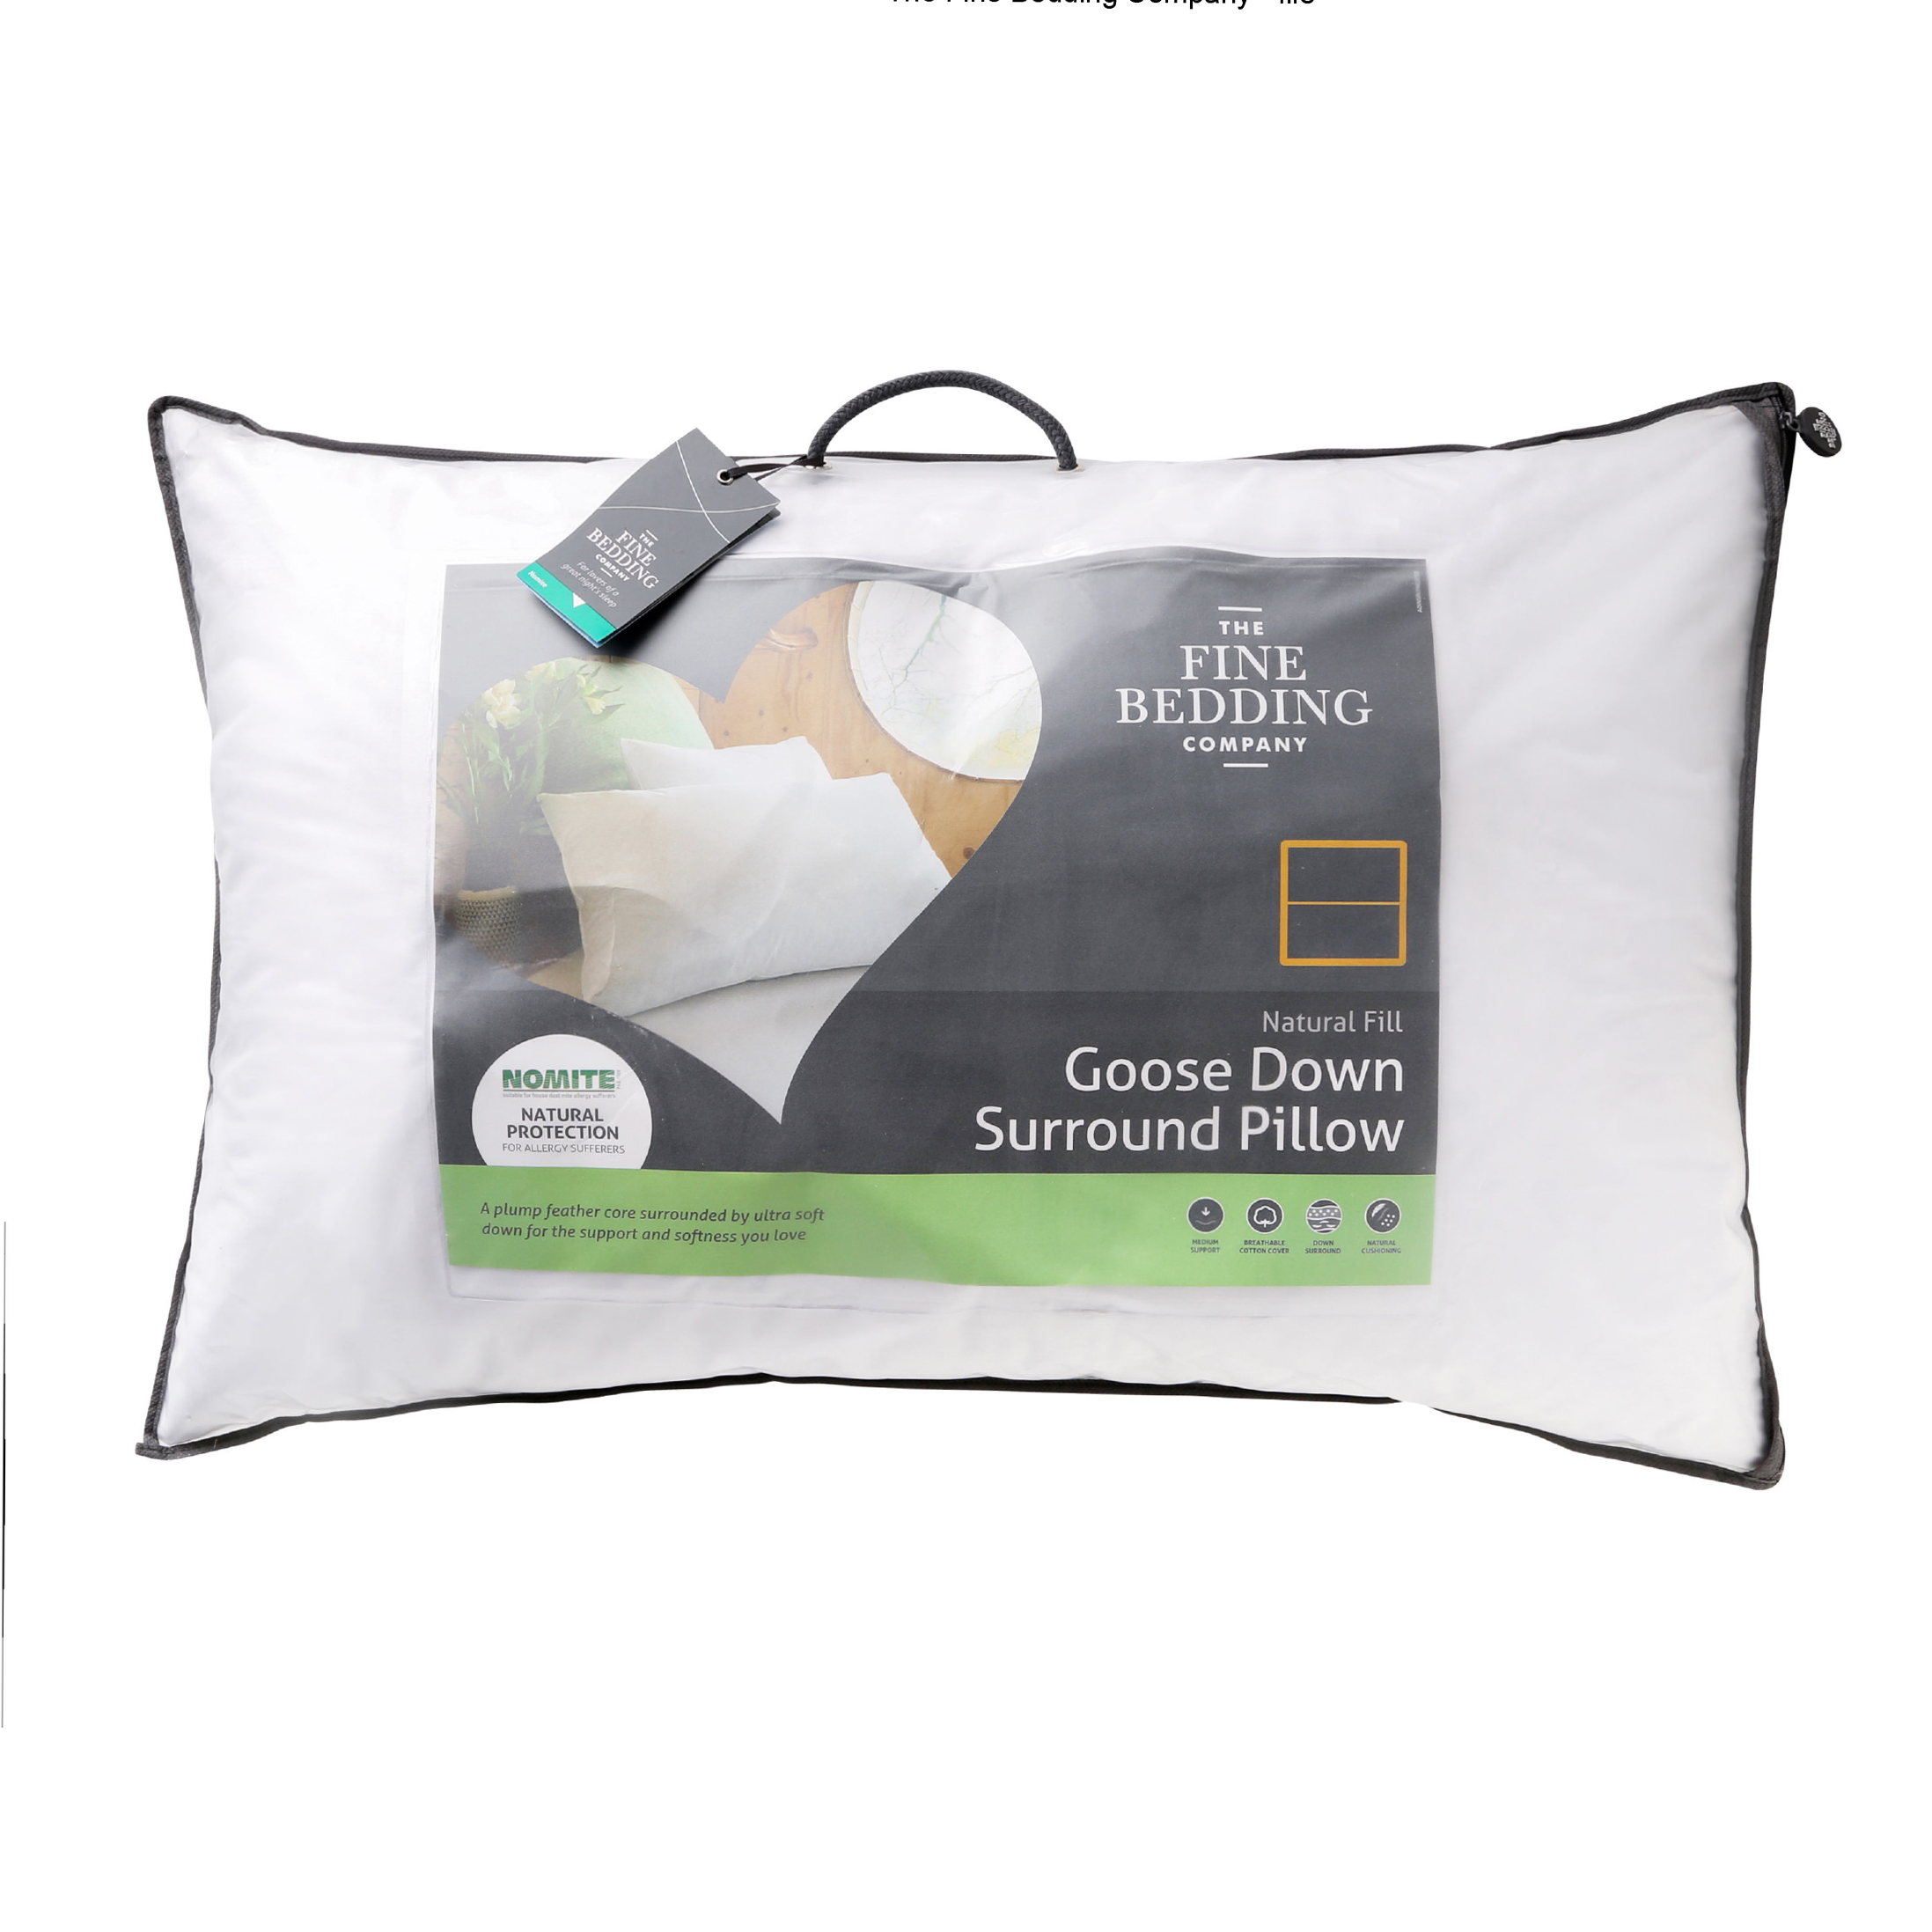 The Fine Bedding Company Natural Fill Goose Down Surround Pillow